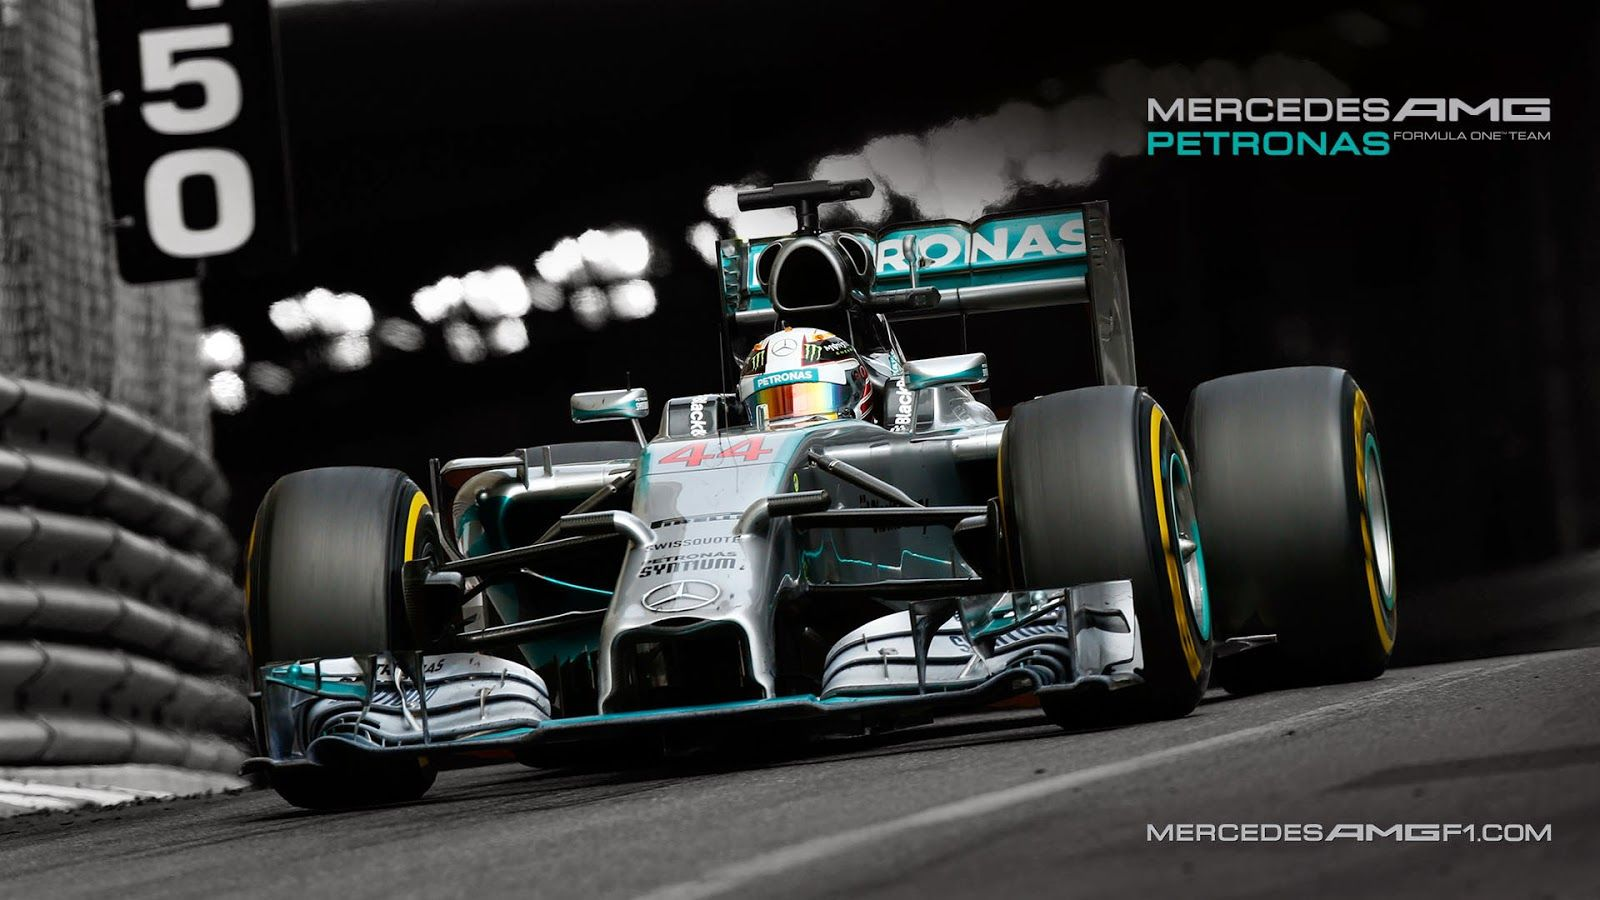 F1 Mercedes Wallpaper Hd Resolution Klh With Images Mercedes